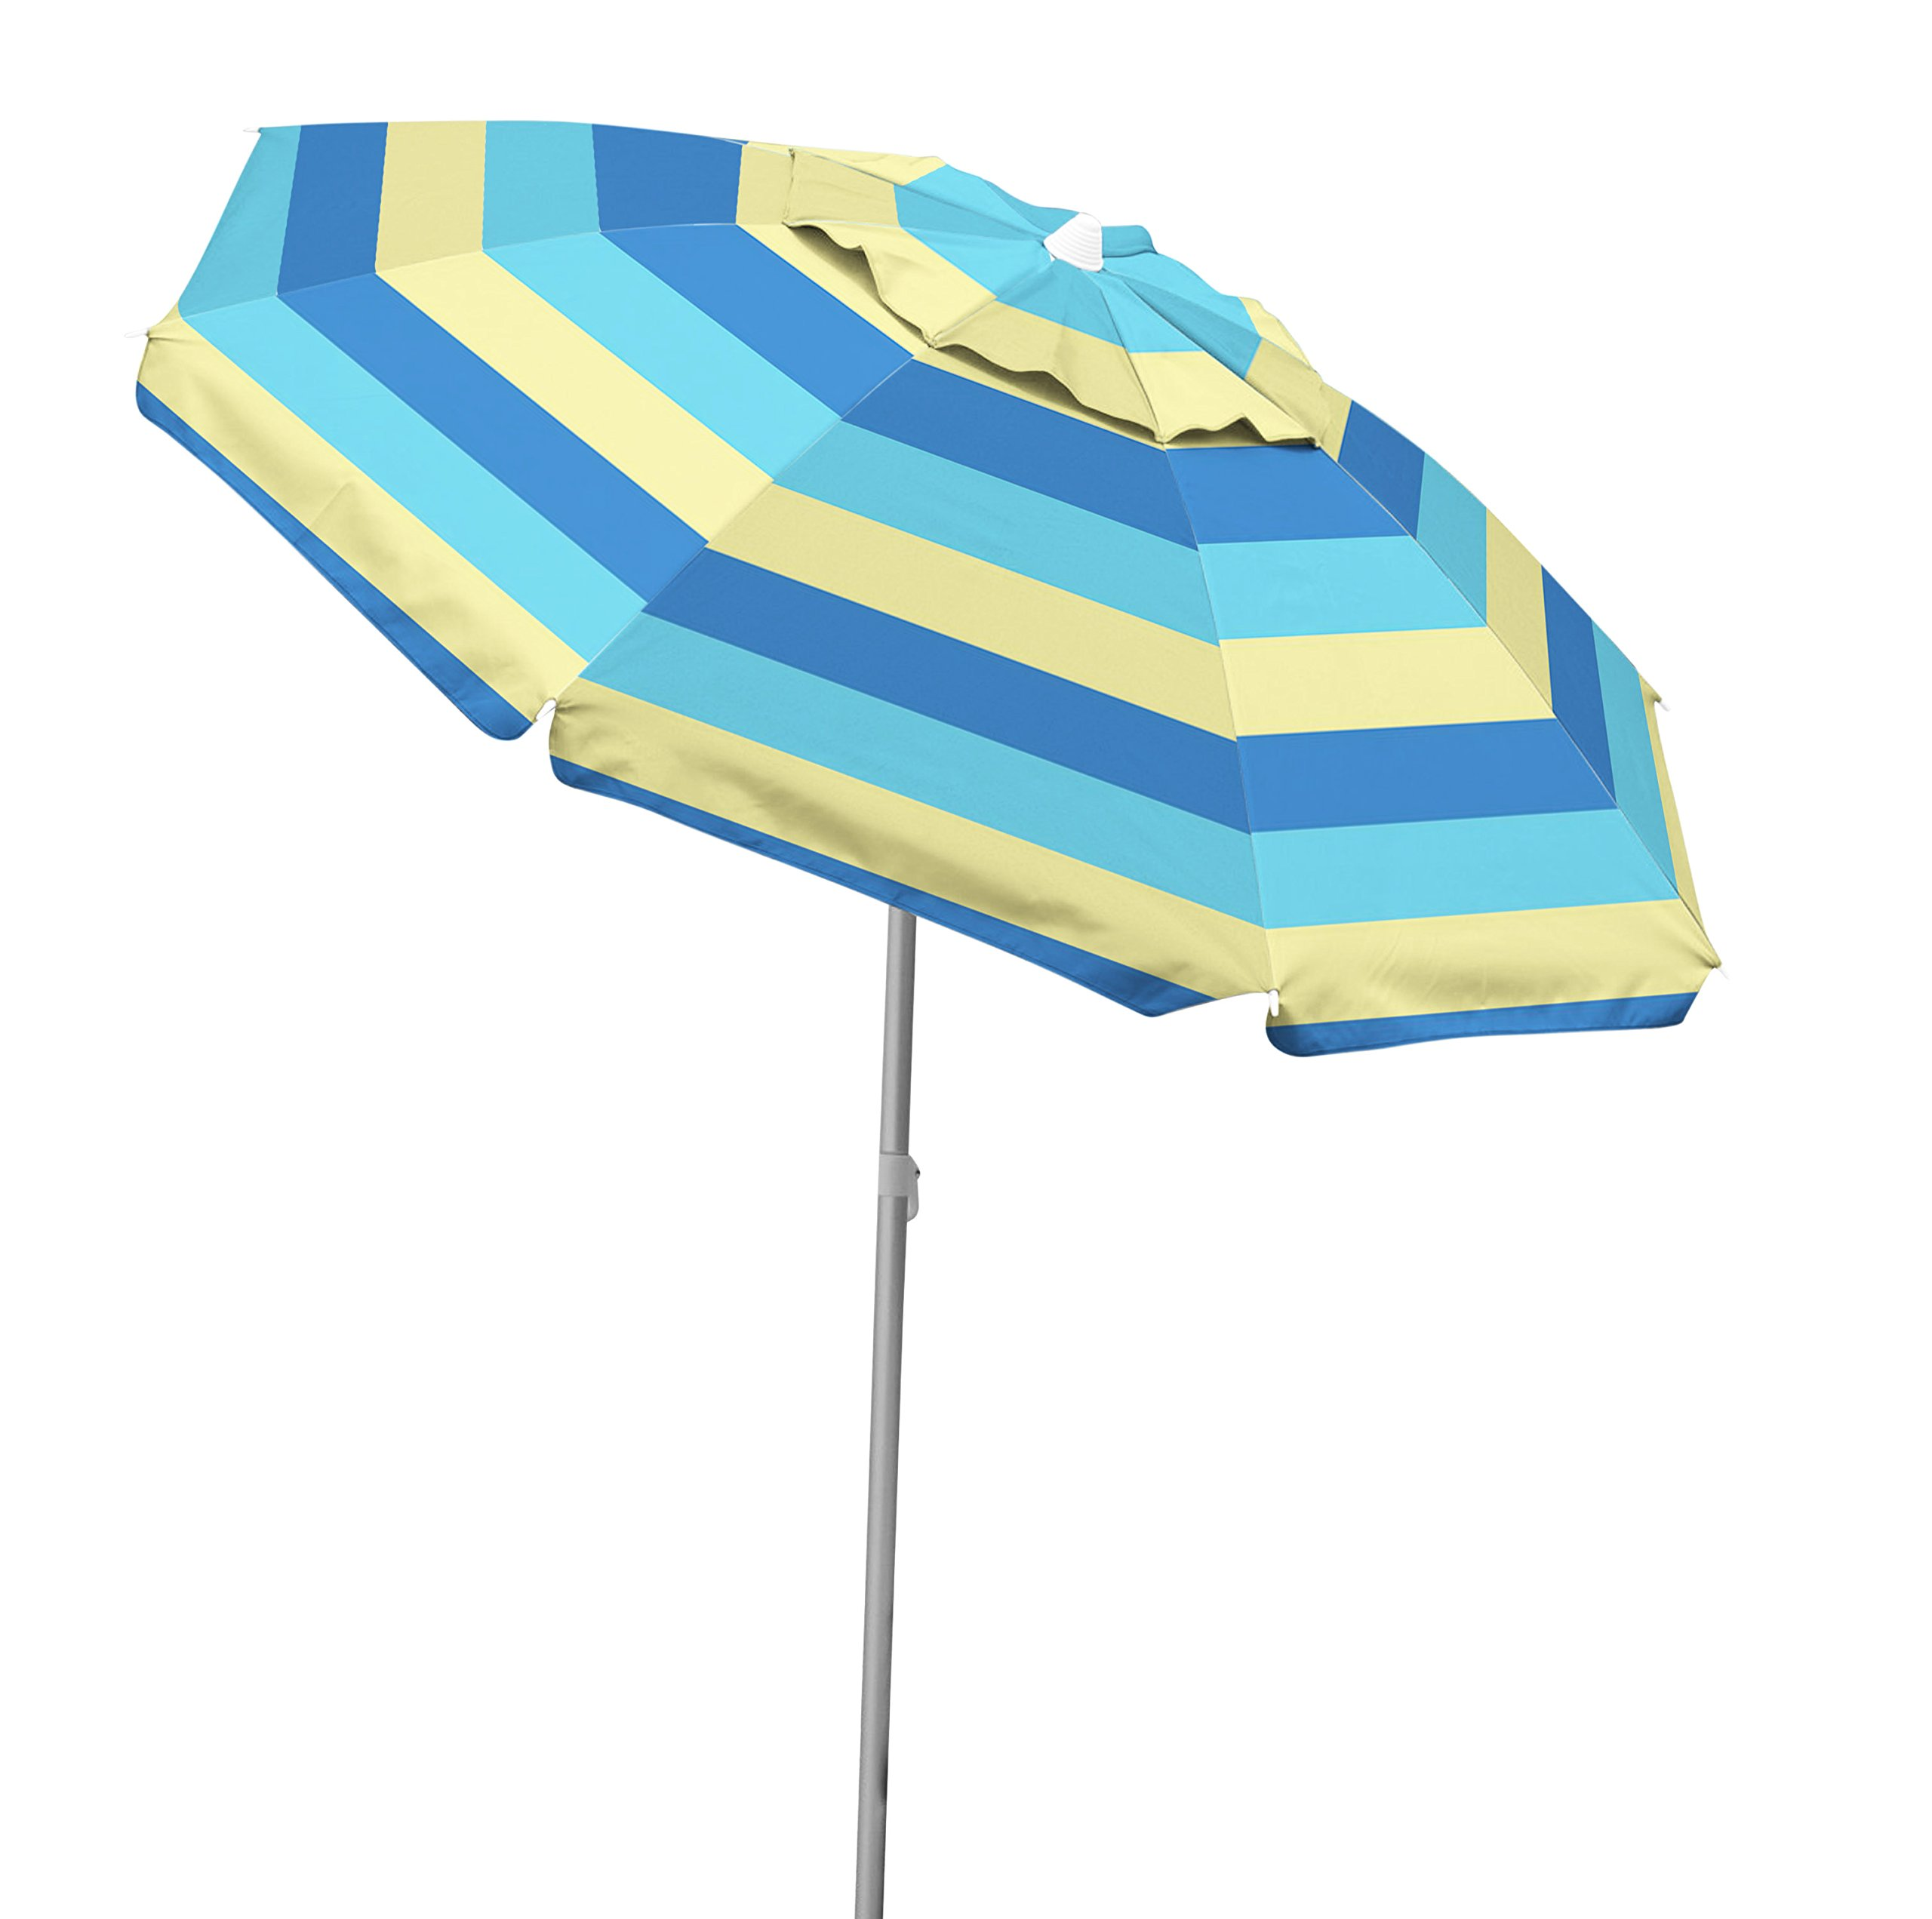 Caribbean Joe Tilting Beach Umbrella Double Canopy Windproof Design with UV Protection, Stripe, 6.5' by Caribbean Joe